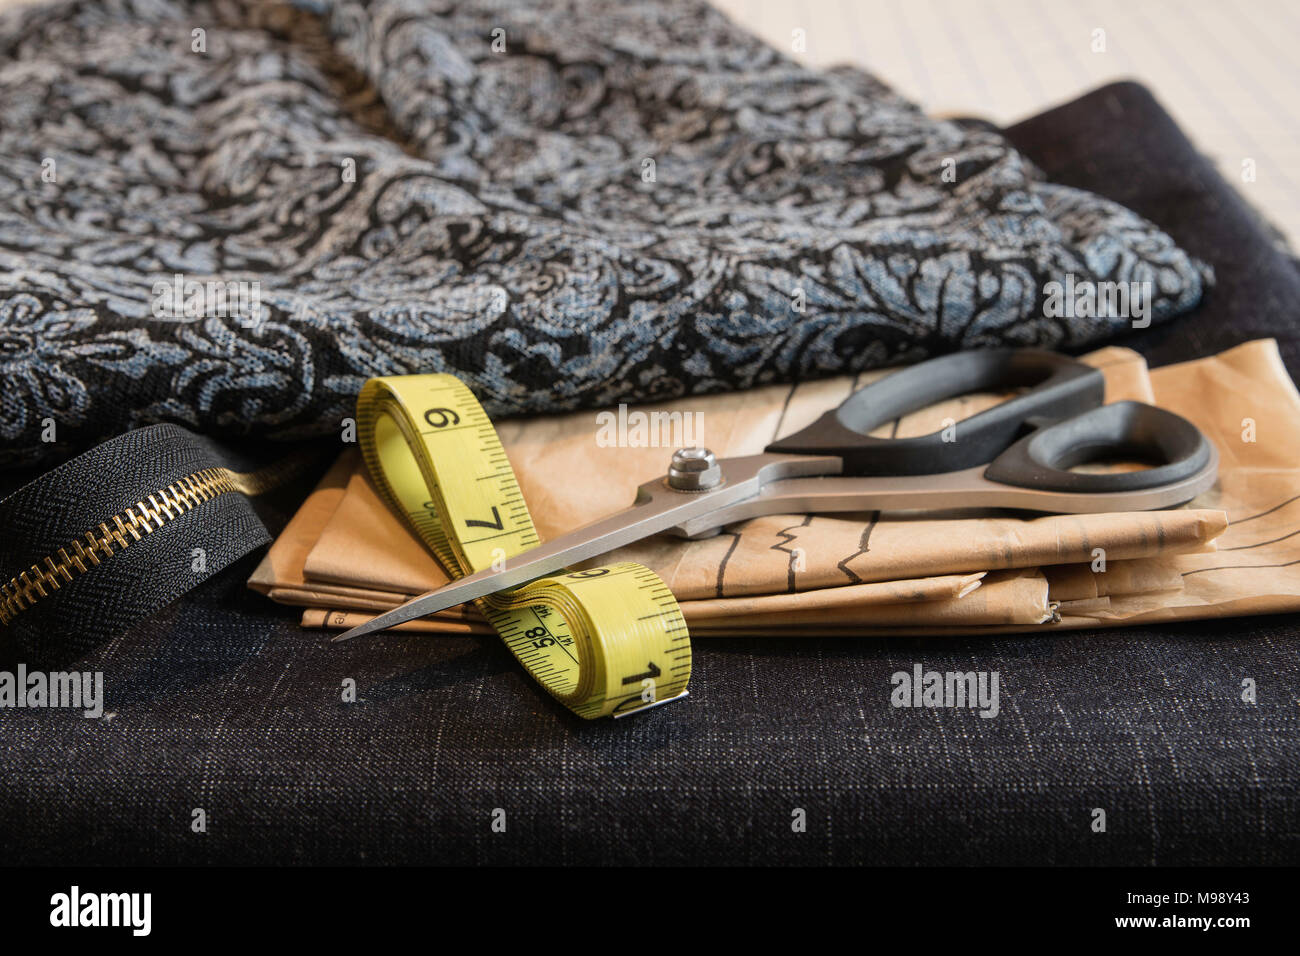 Sewing Notions Stockfotos & Sewing Notions Bilder - Alamy